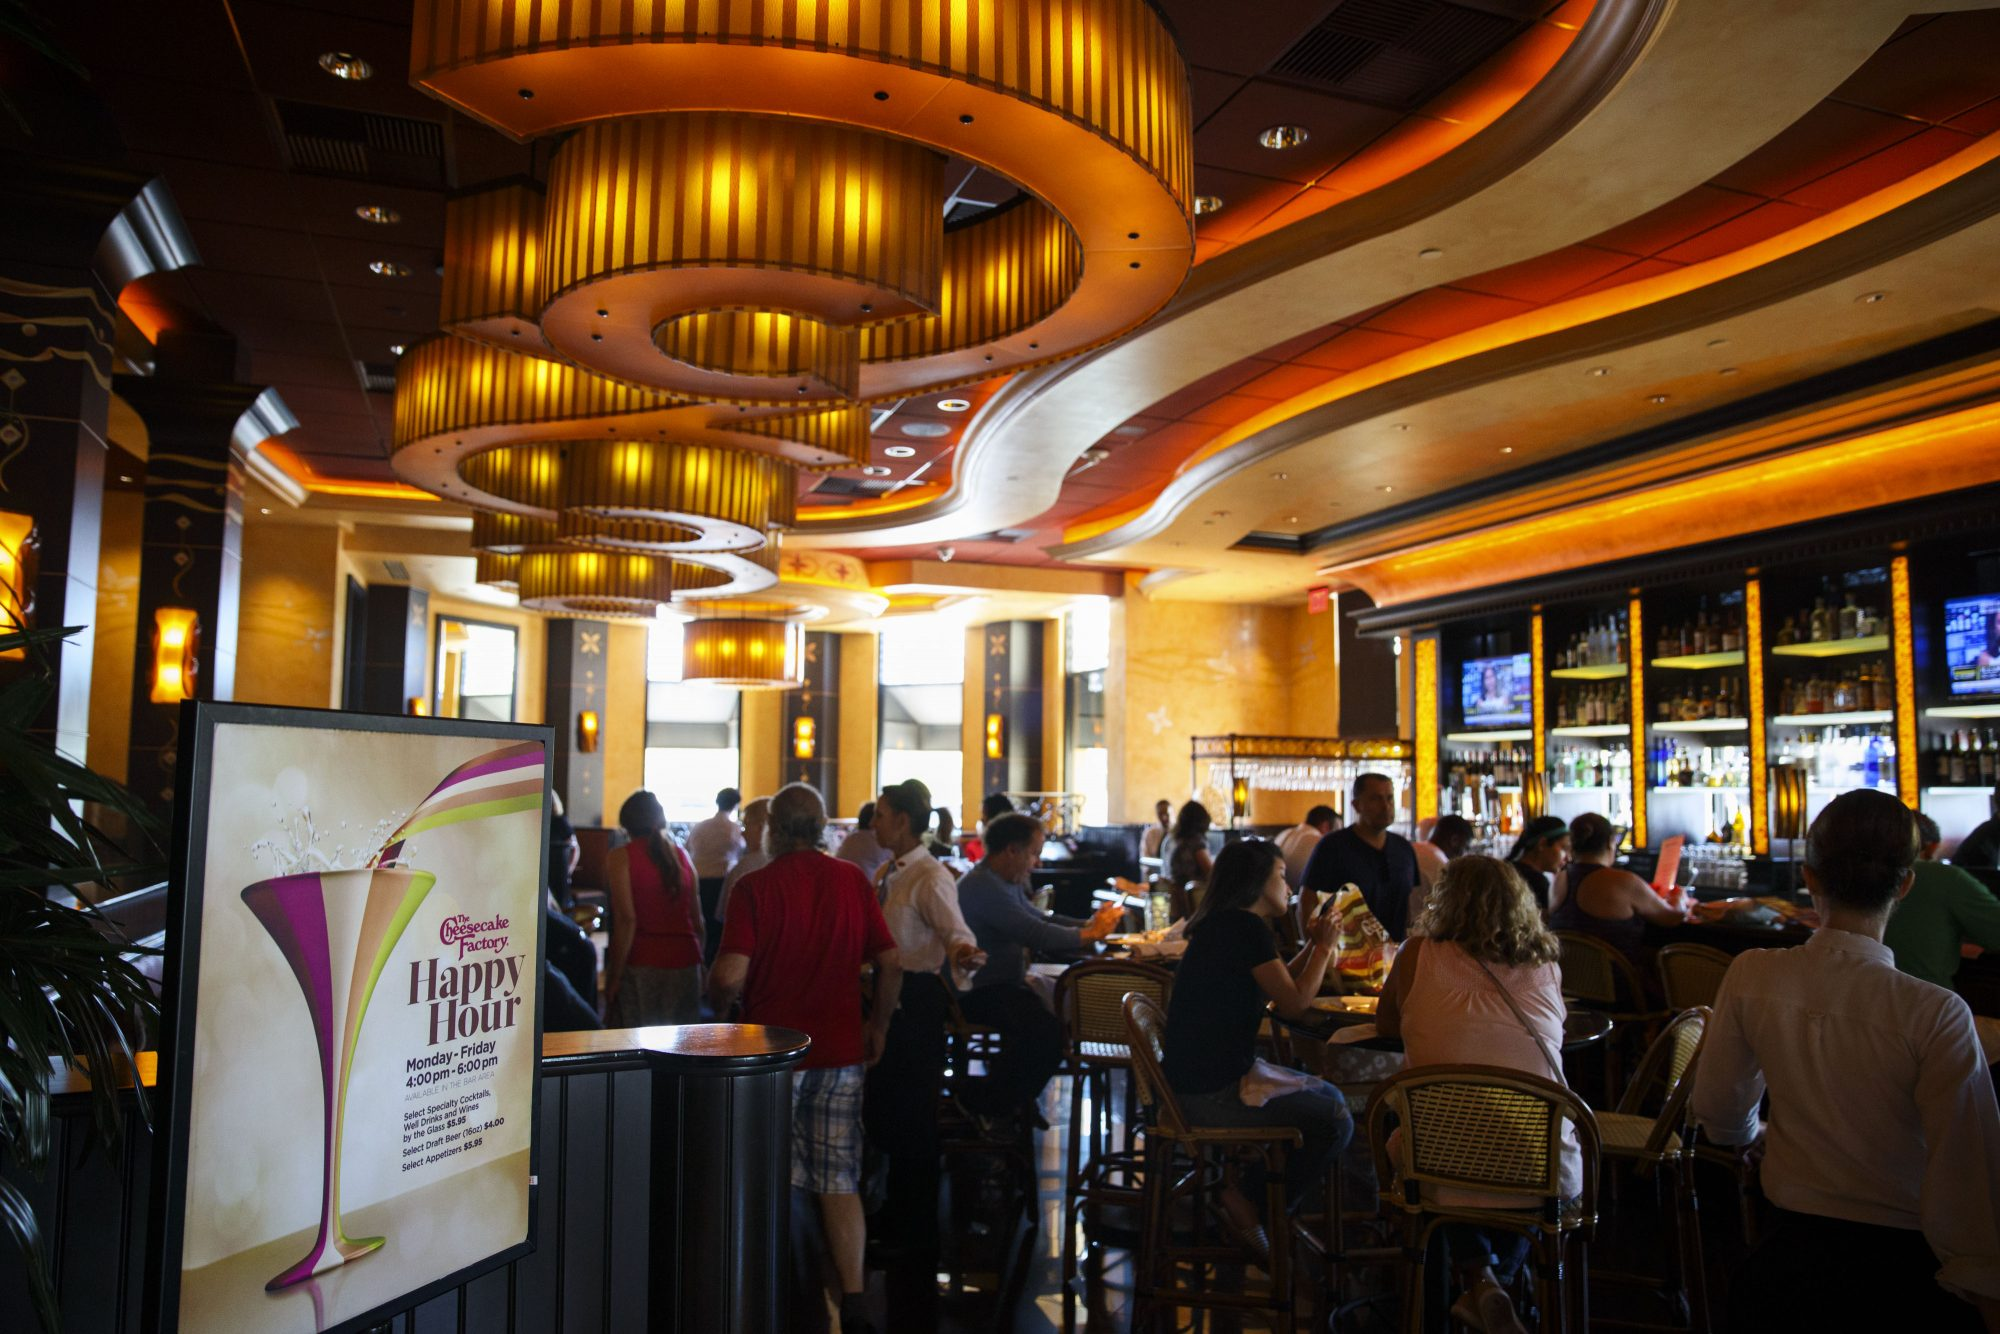 Inside A Cheesecake Factory Inc. Restaurant Ahead Of Earnings Figures